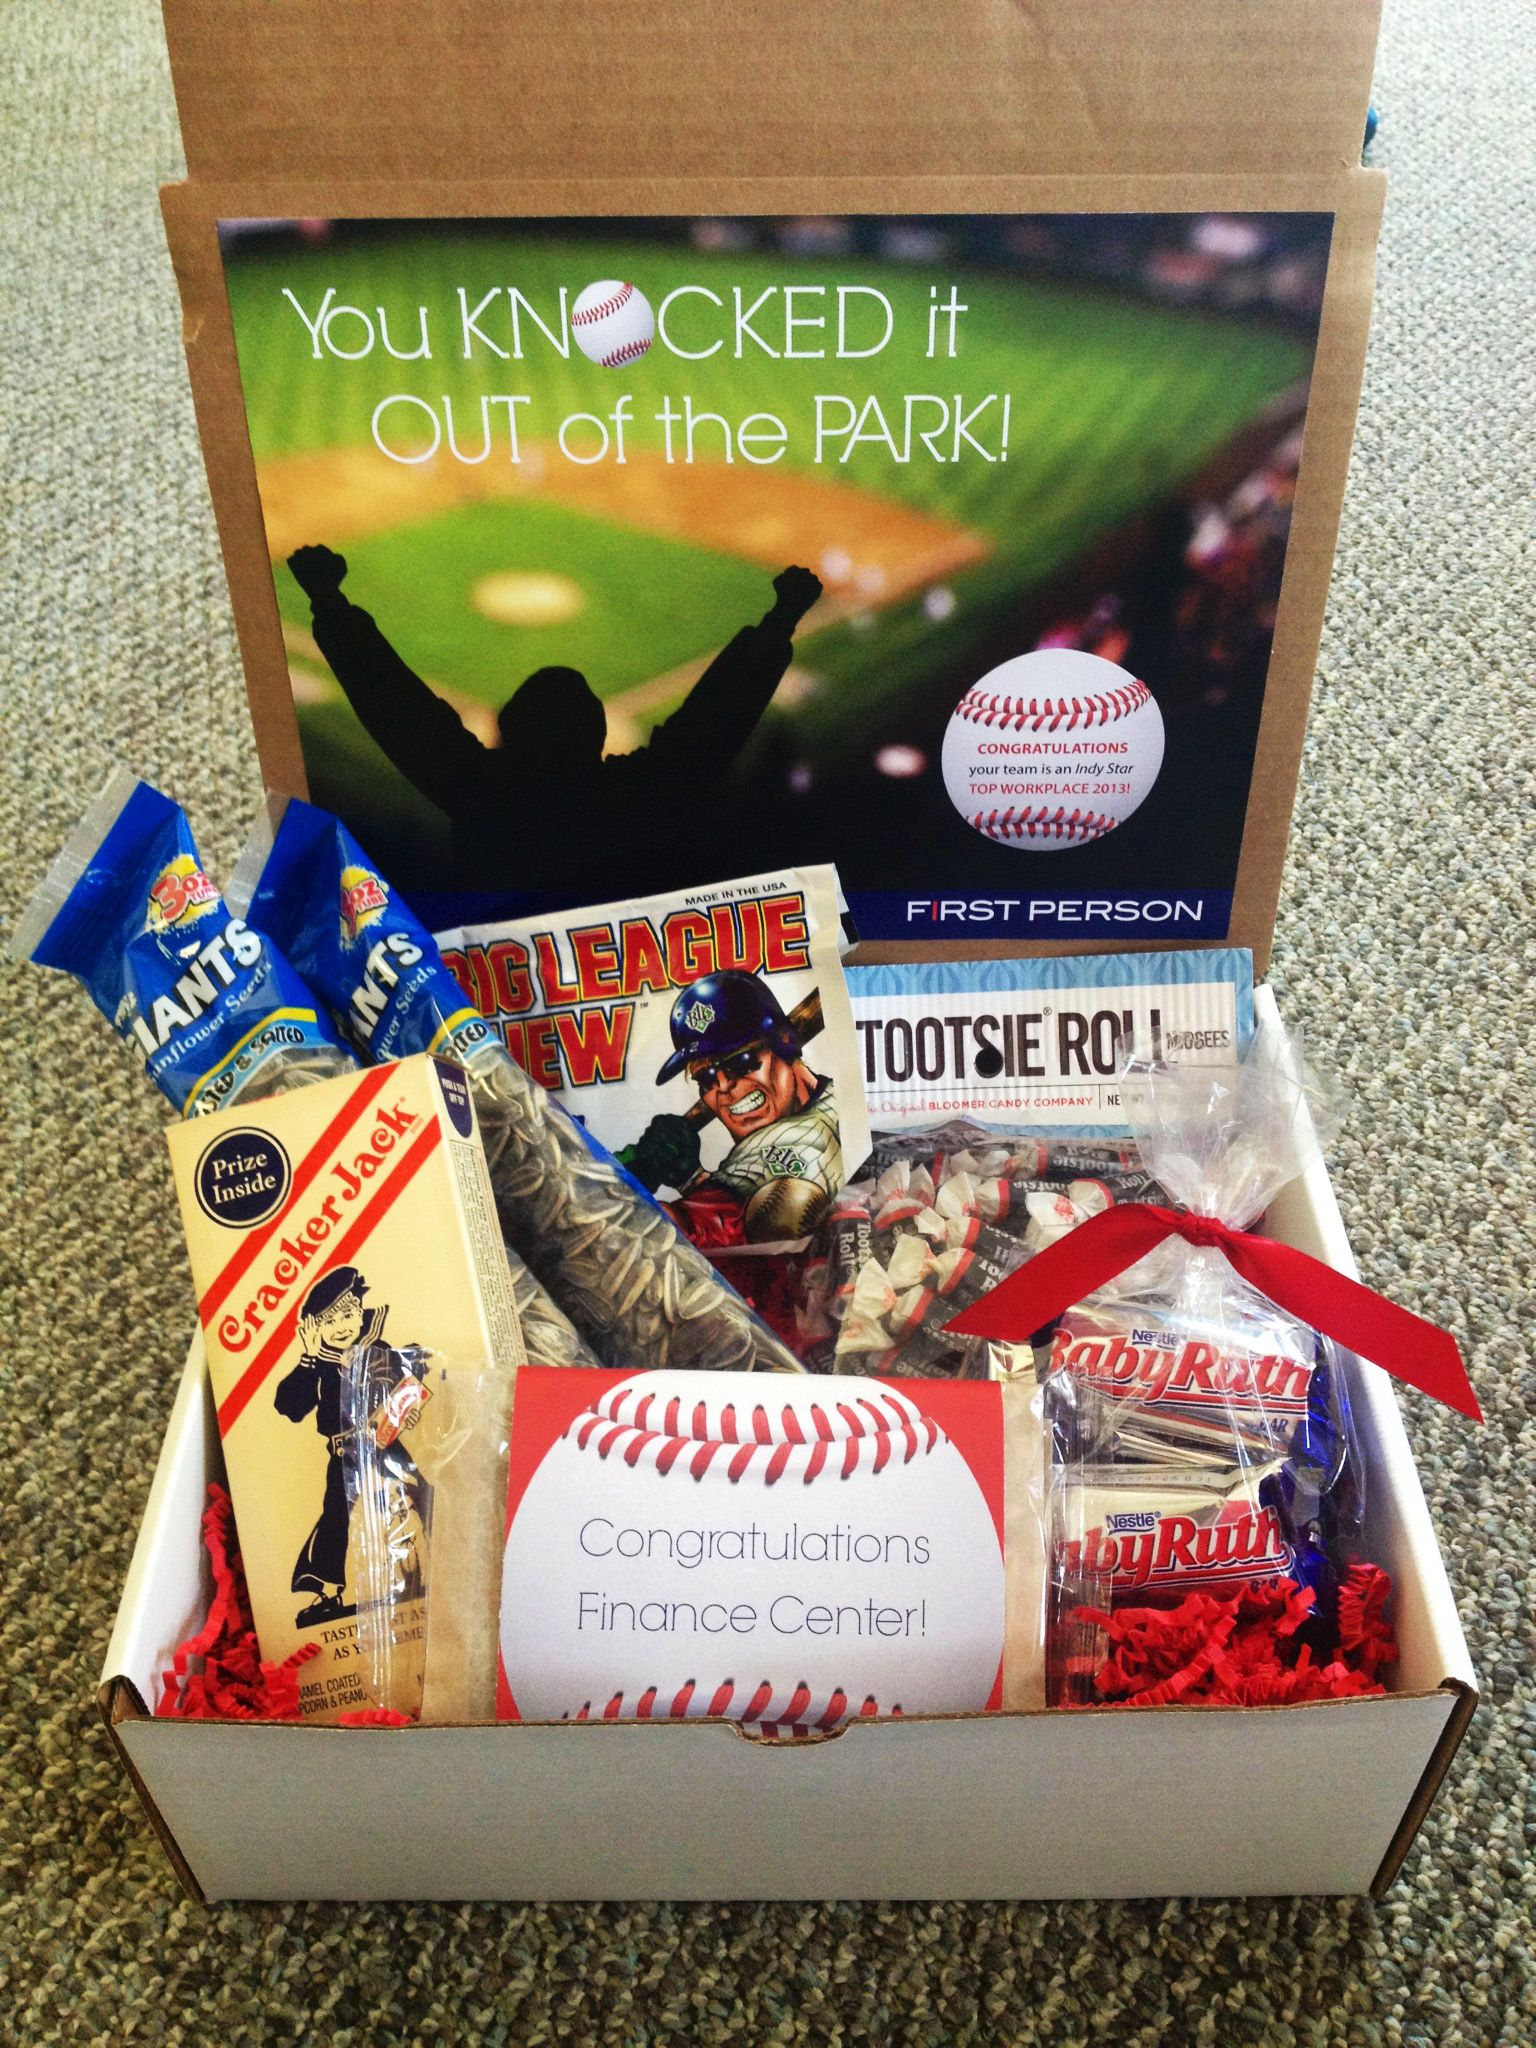 Baseball Themed Gift Box (Cracker Jacks, Sunflower Seeds, Tootsie Rolls,